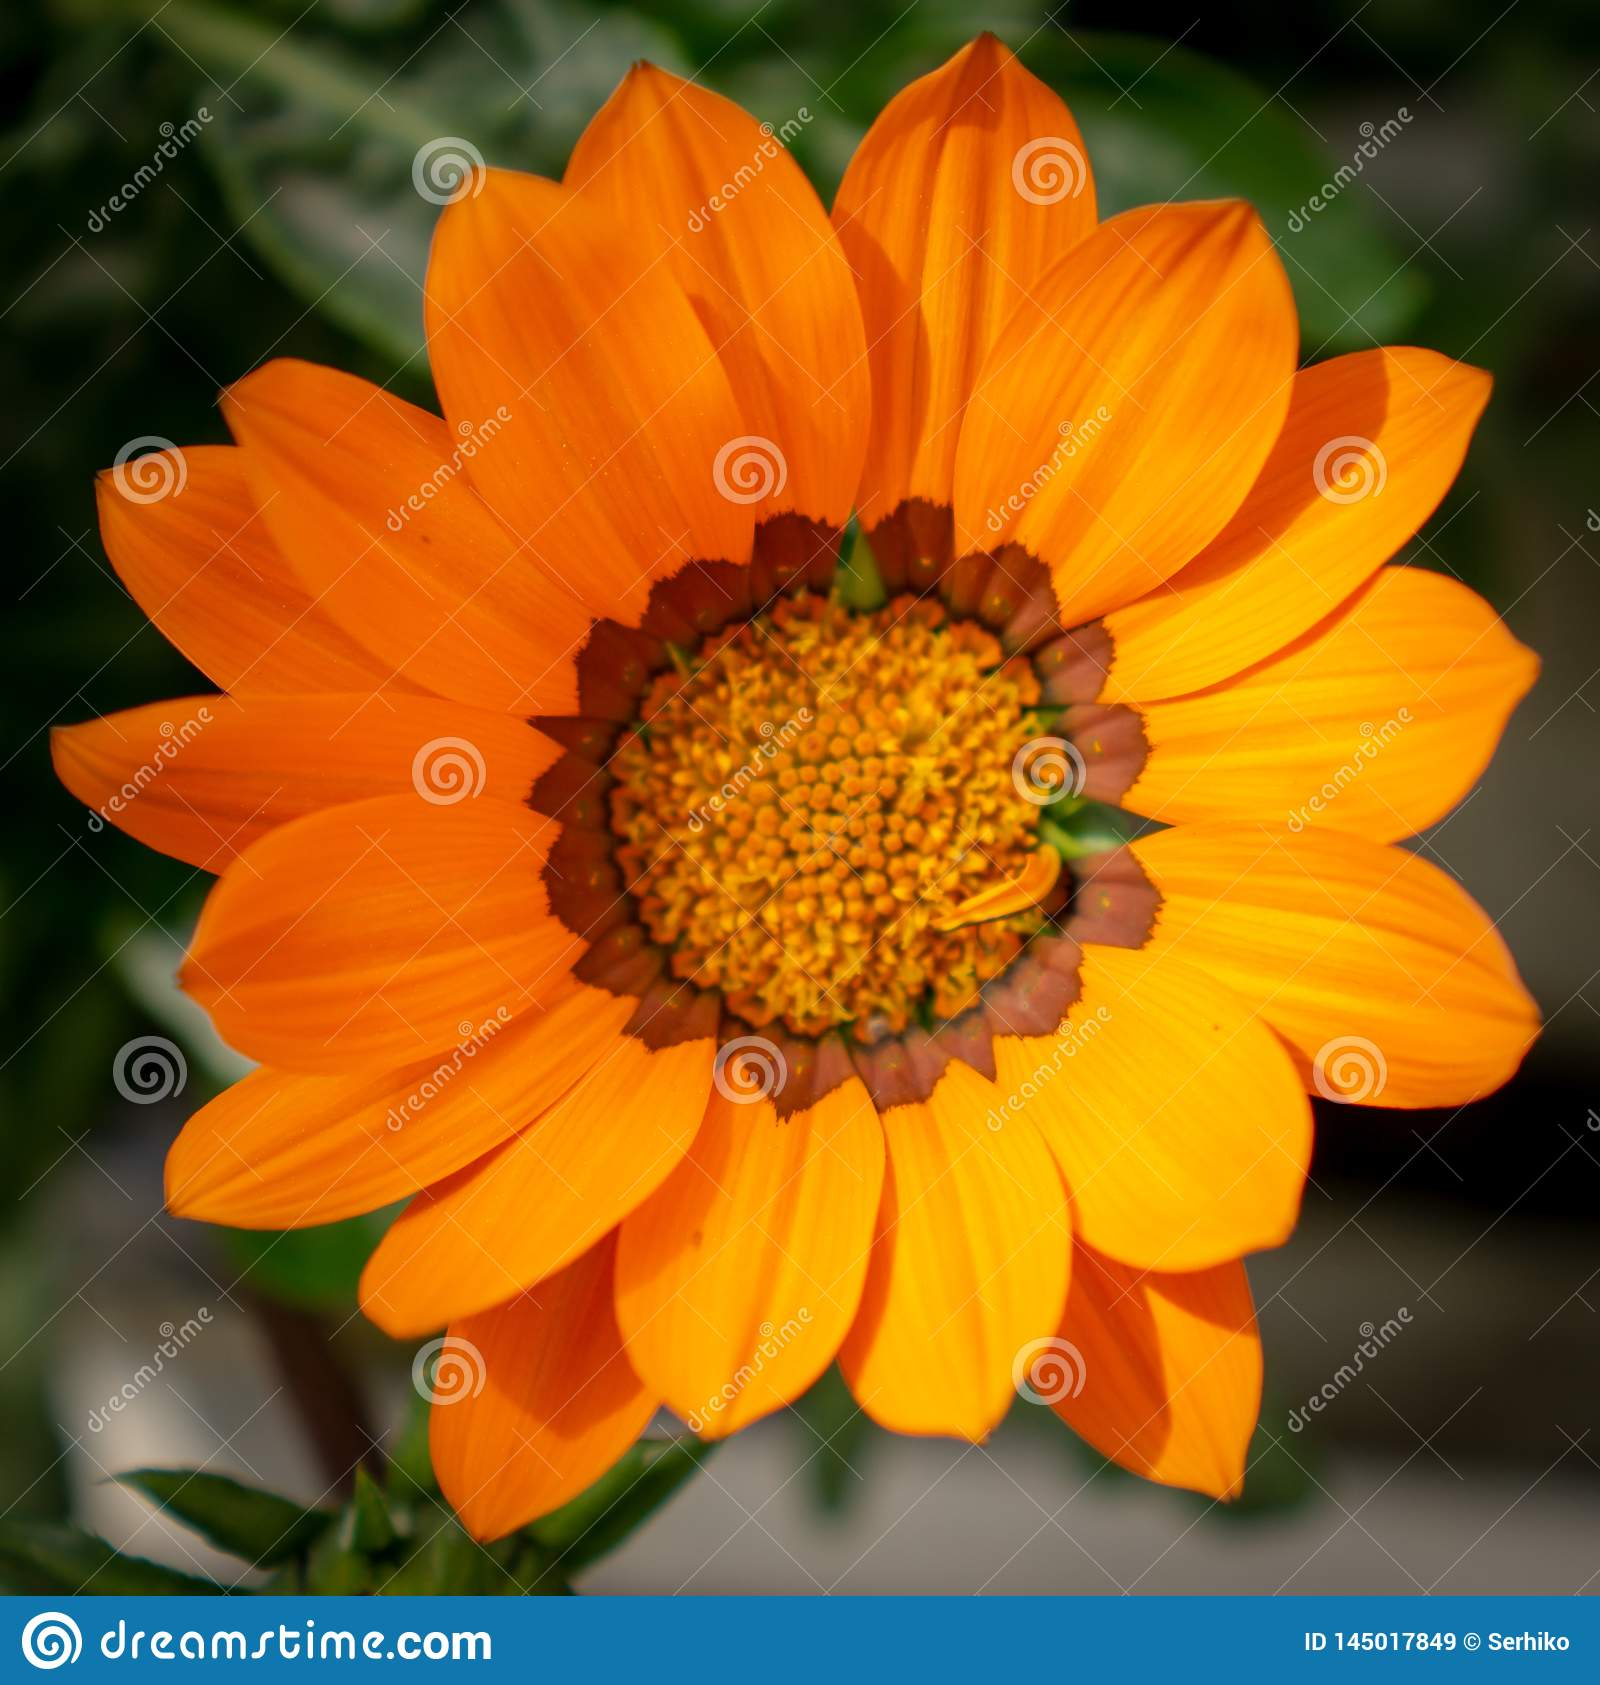 A single orange gazania flower closeup